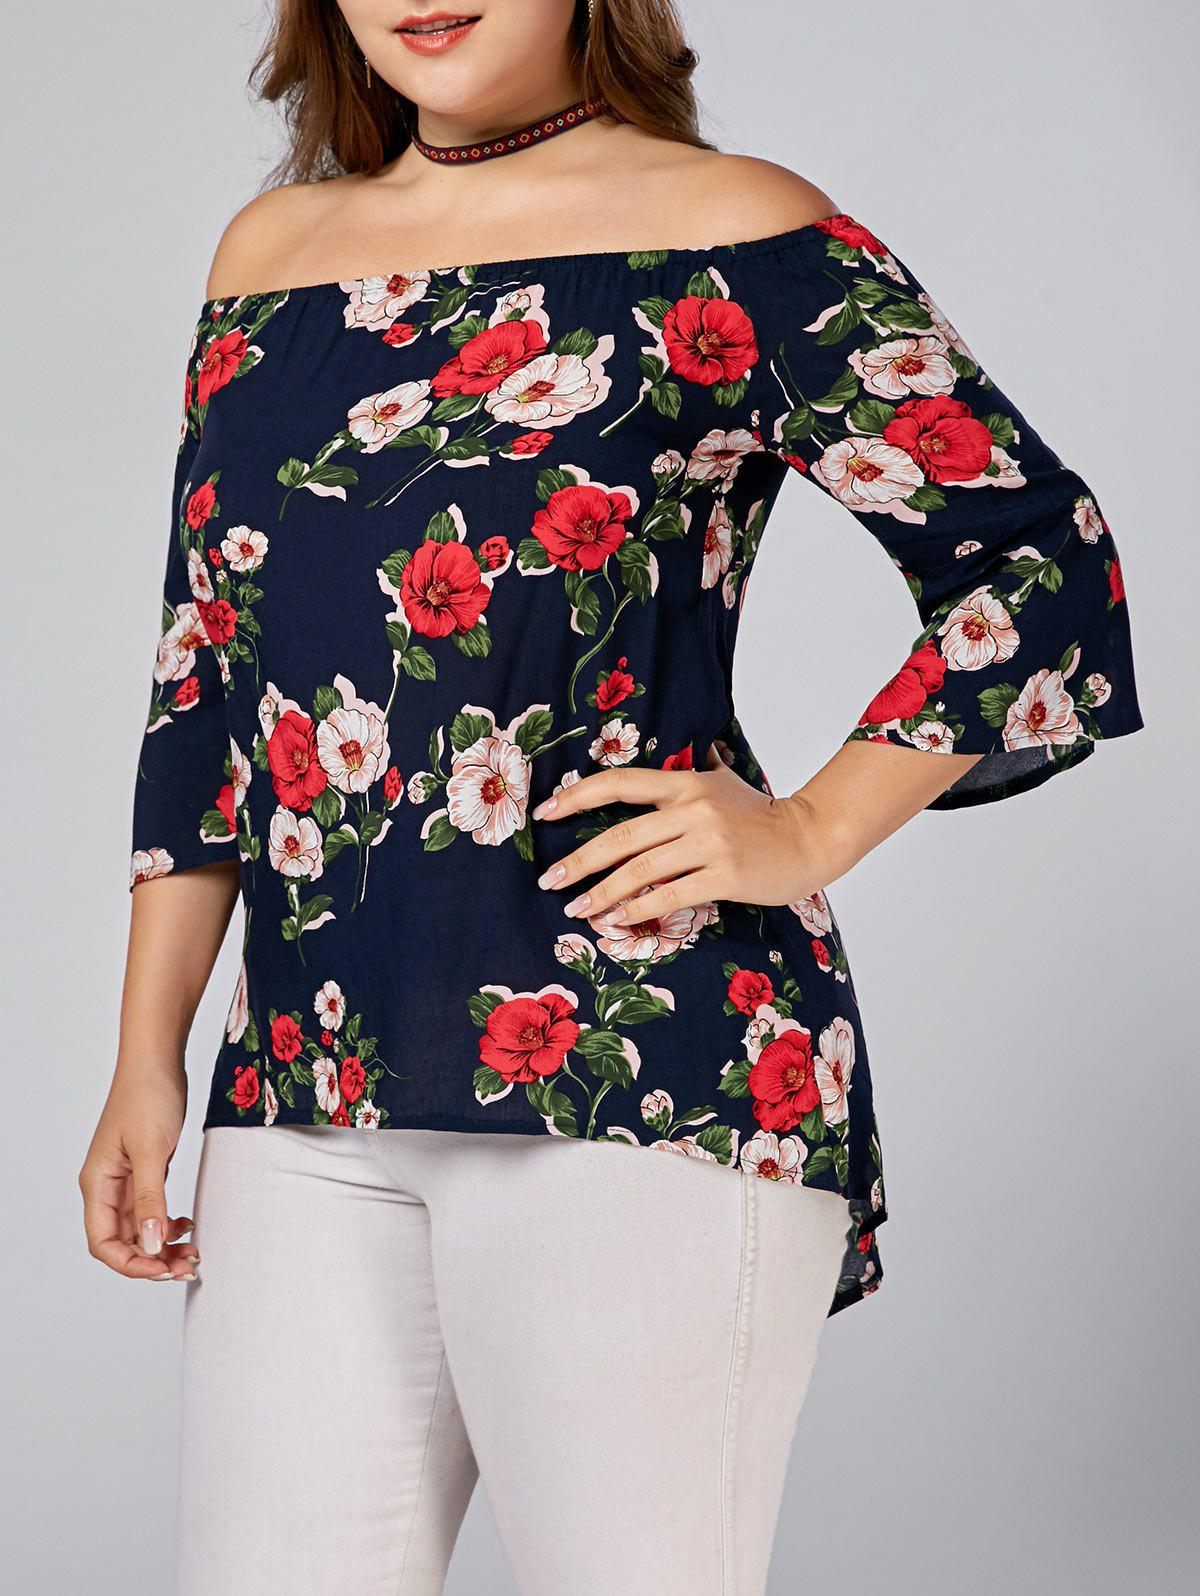 Plus Size Floral Printed Off Shoulder TopWOMEN<br><br>Size: 2XL; Color: DEEP BLUE; Material: Cotton Blends,Polyester; Shirt Length: Long; Sleeve Length: Three Quarter; Collar: Off The Shoulder; Style: Fashion; Season: Spring,Summer; Sleeve Type: Flare Sleeve; Pattern Type: Floral; Weight: 0.1800kg; Package Contents: 1 x Top;